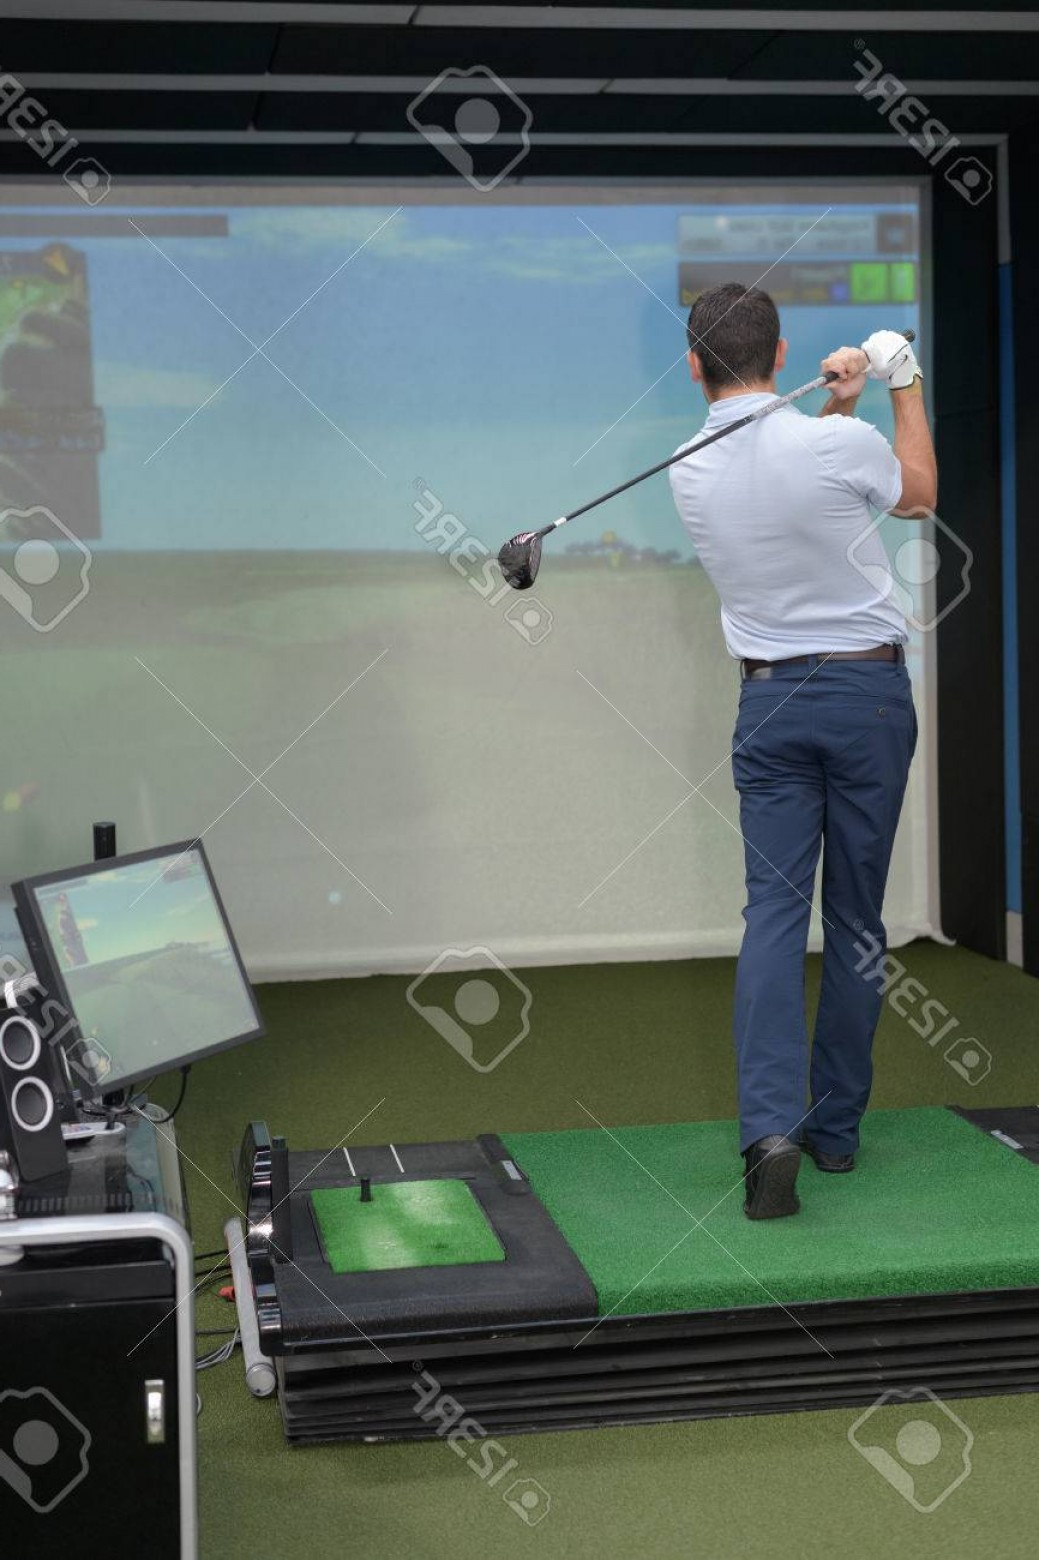 Vector Golf Simulator: Photoman Practicing Golf On Indoor Simulator